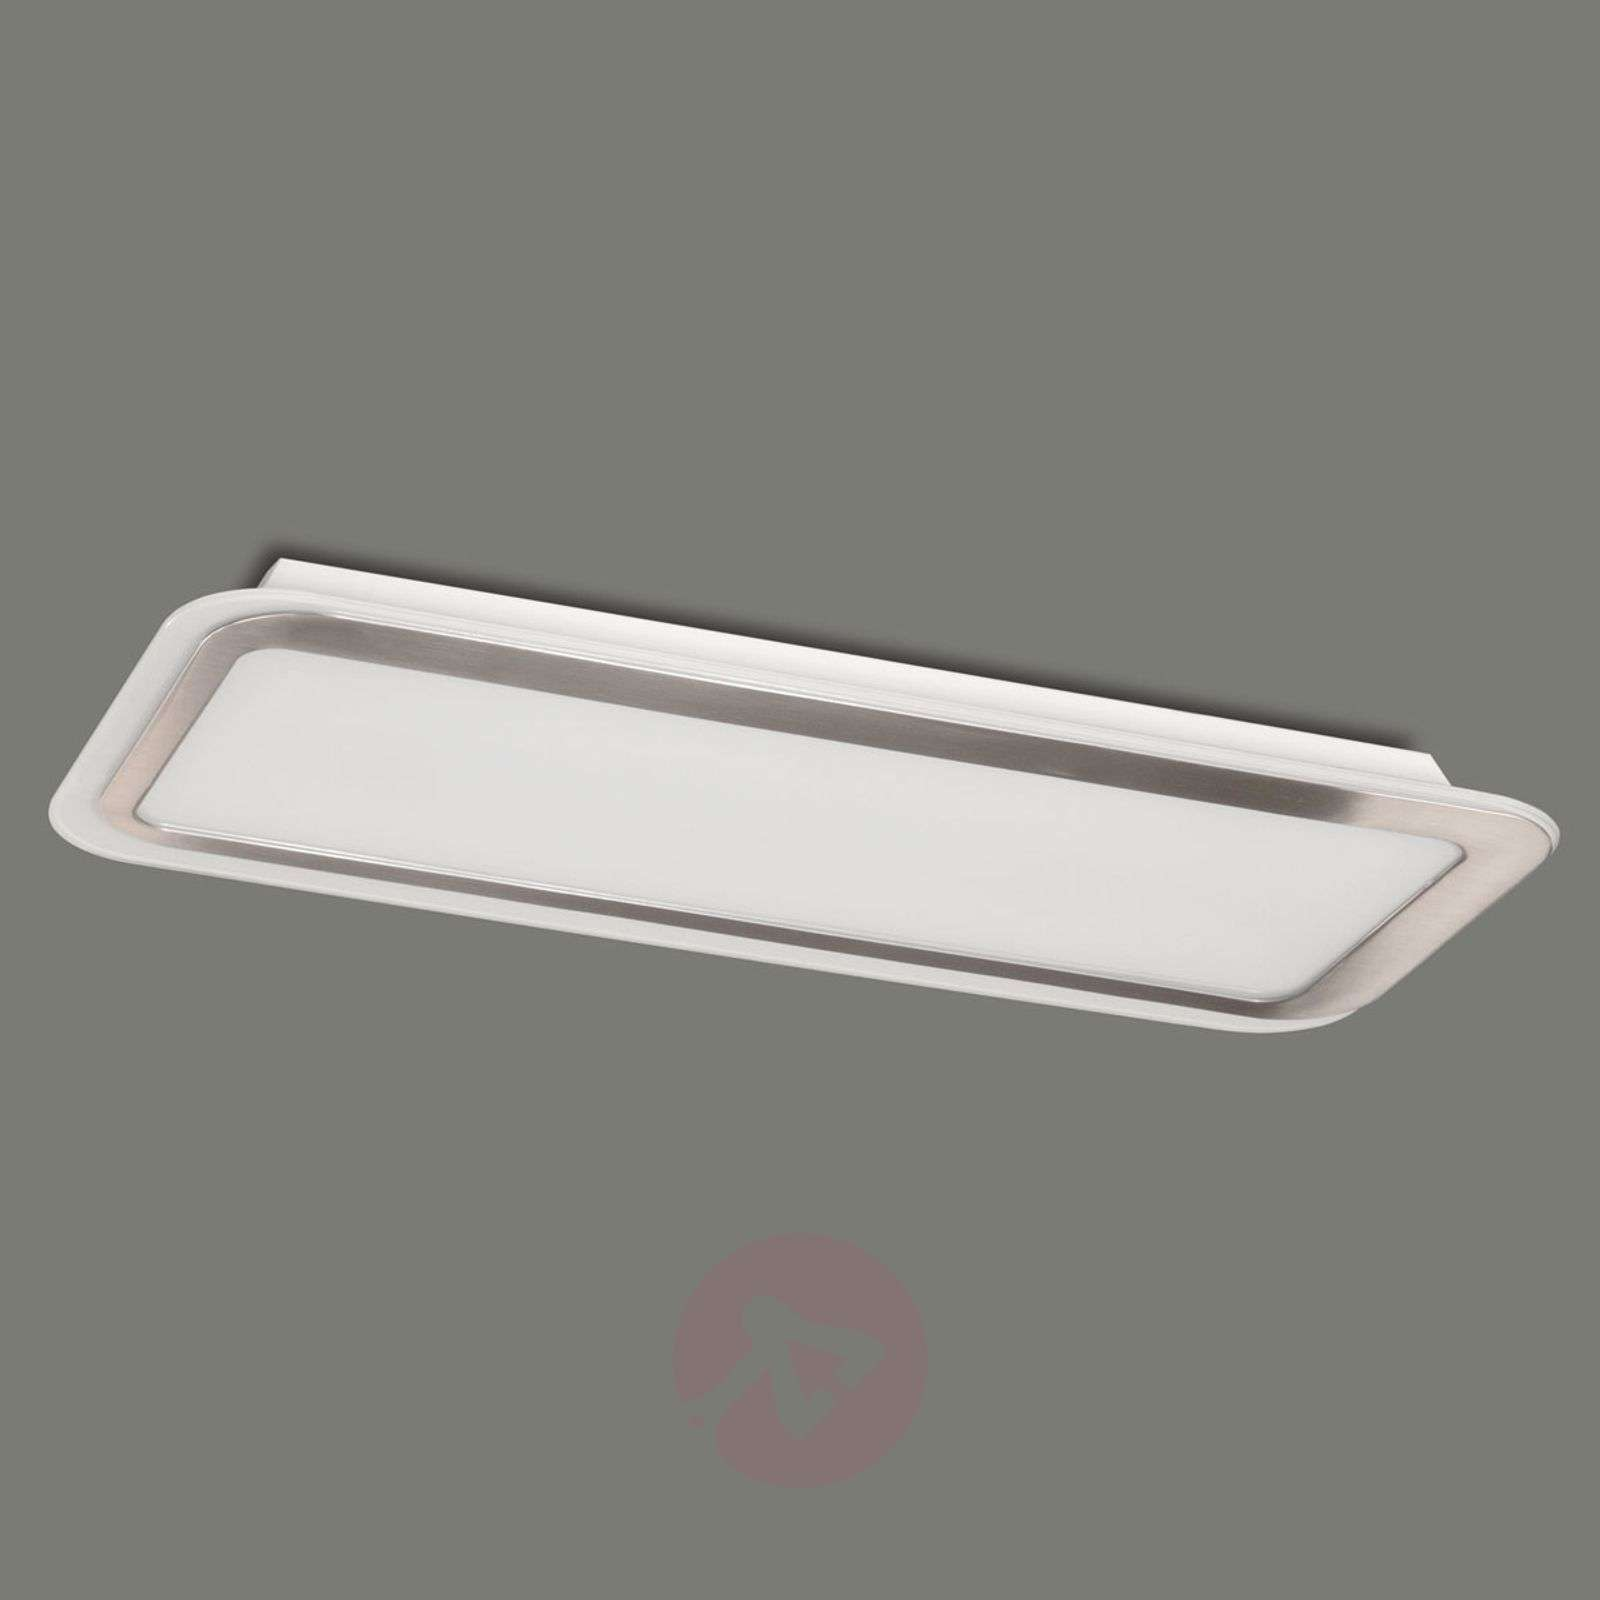 Glogg-ceiling light 63.7 cm-1050076-01